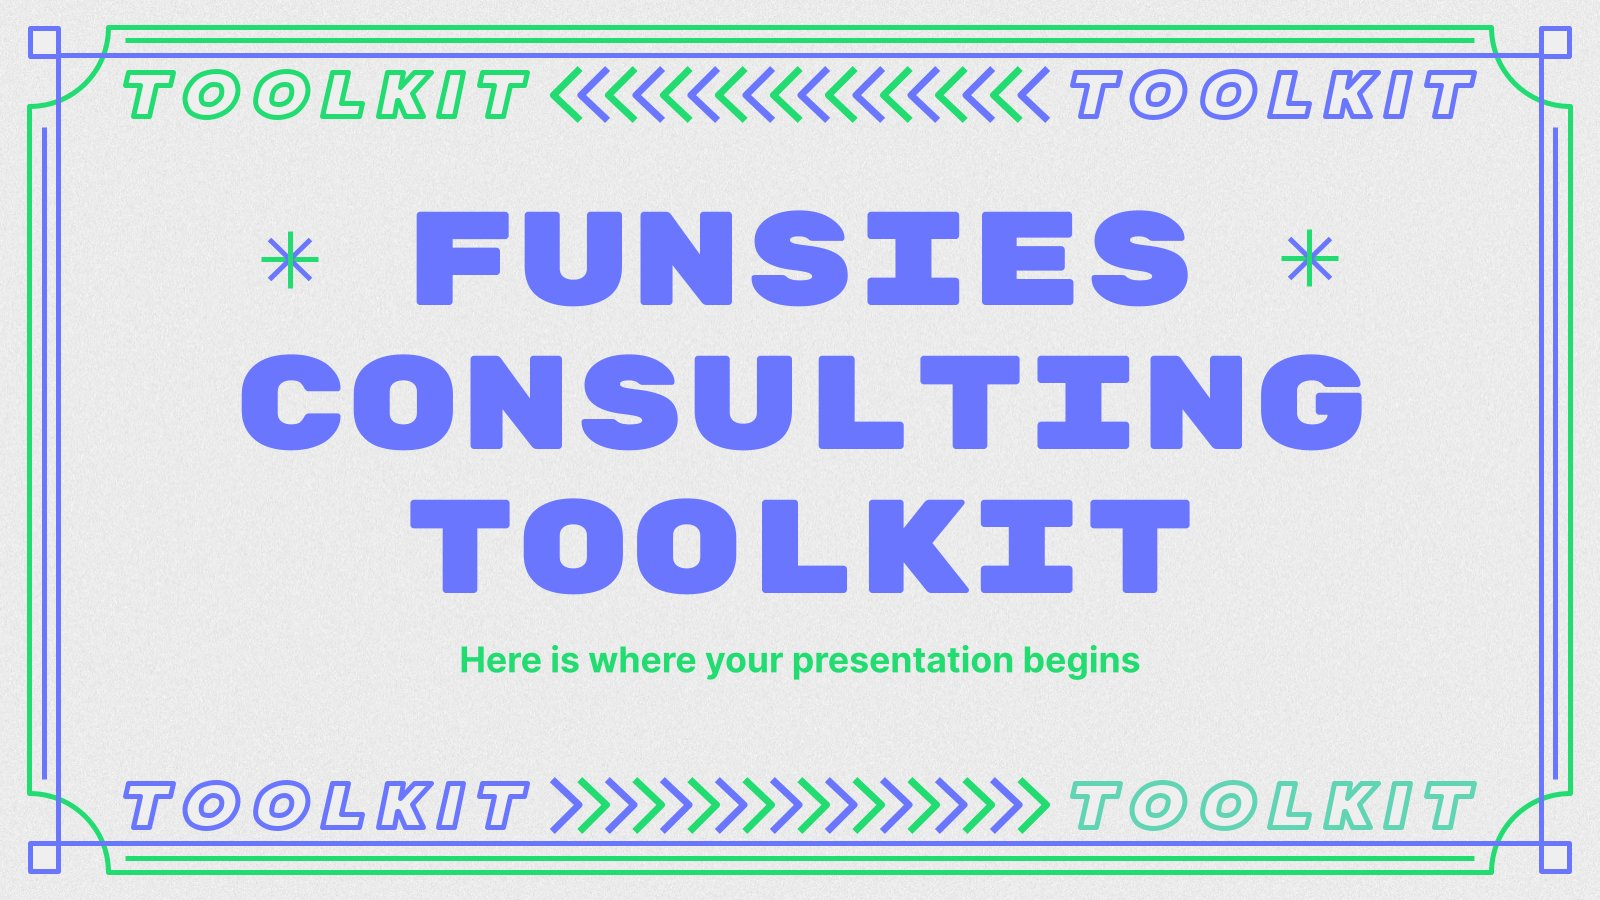 Funsies Consulting Toolkit presentation template